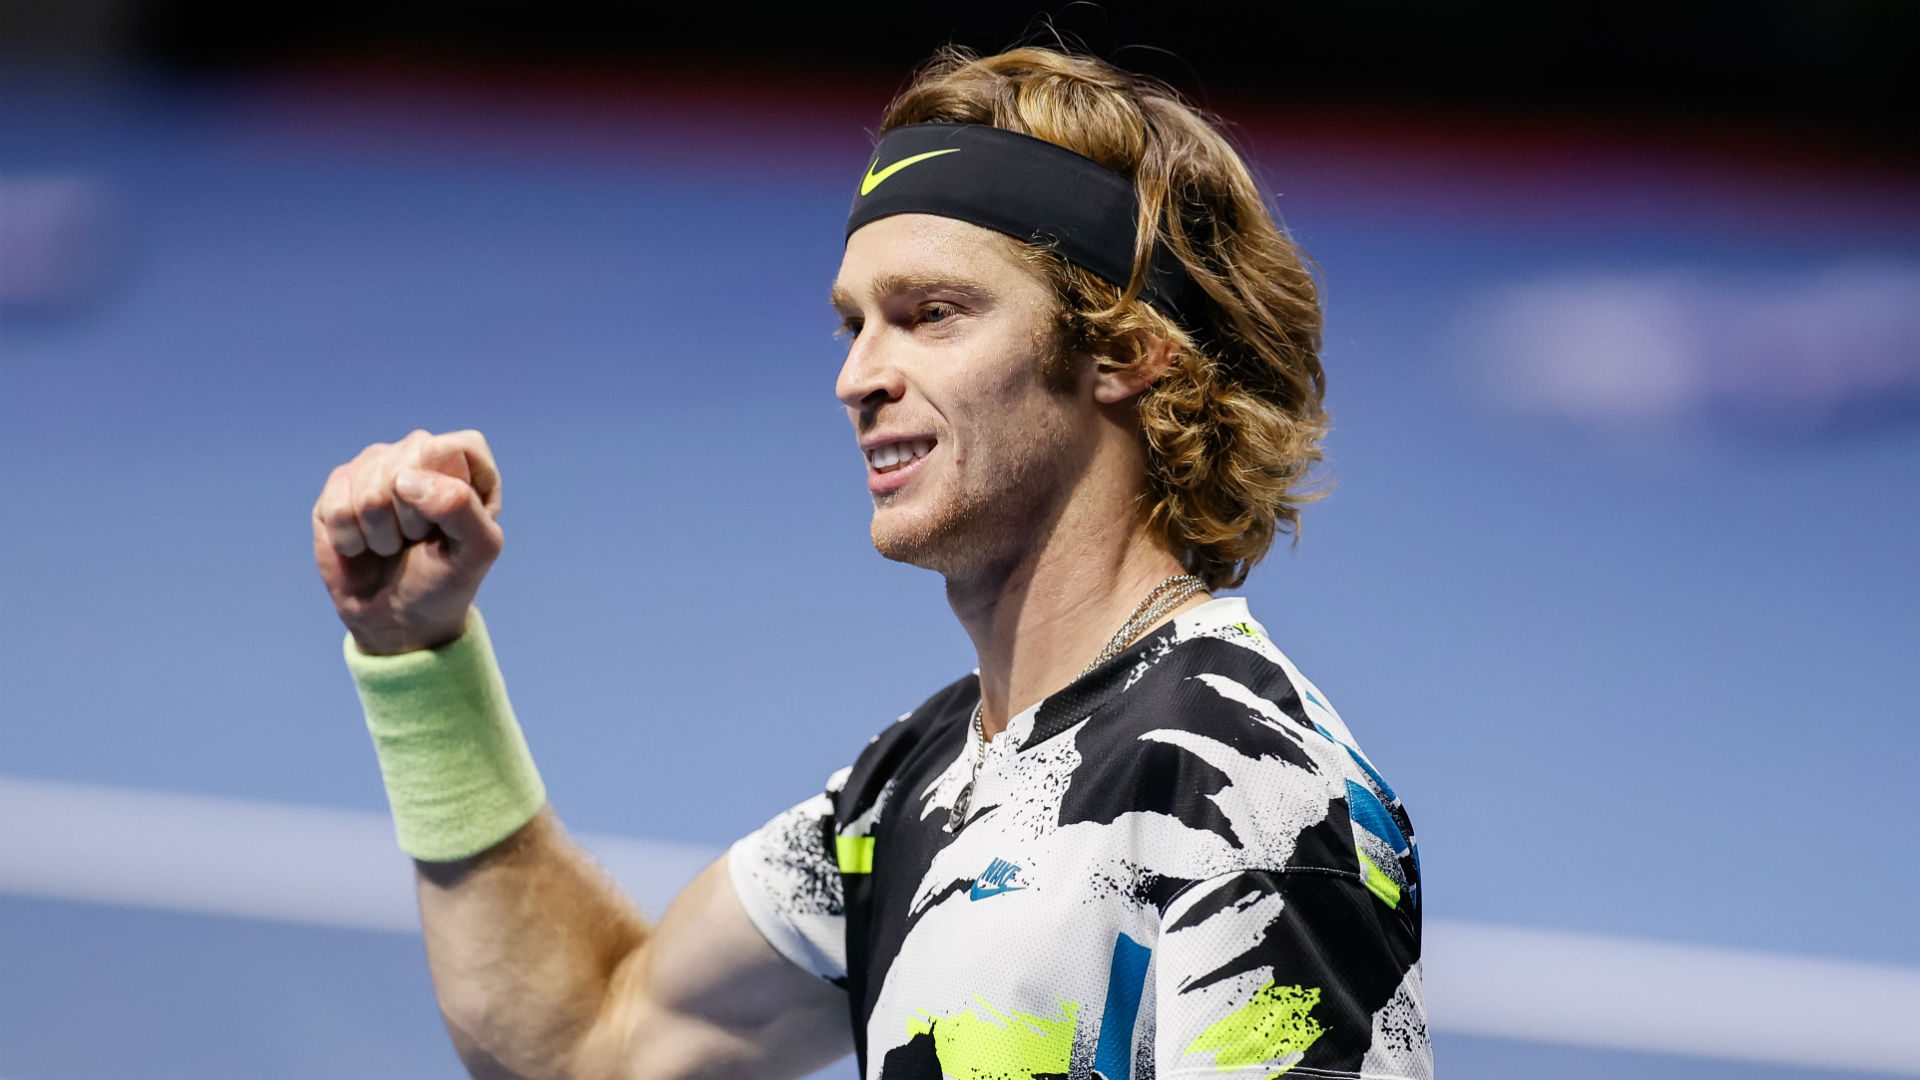 The St Petersburg Open final will see Andrey Rublev face Borna Coric, who is through to the showpiece for the second successive year.